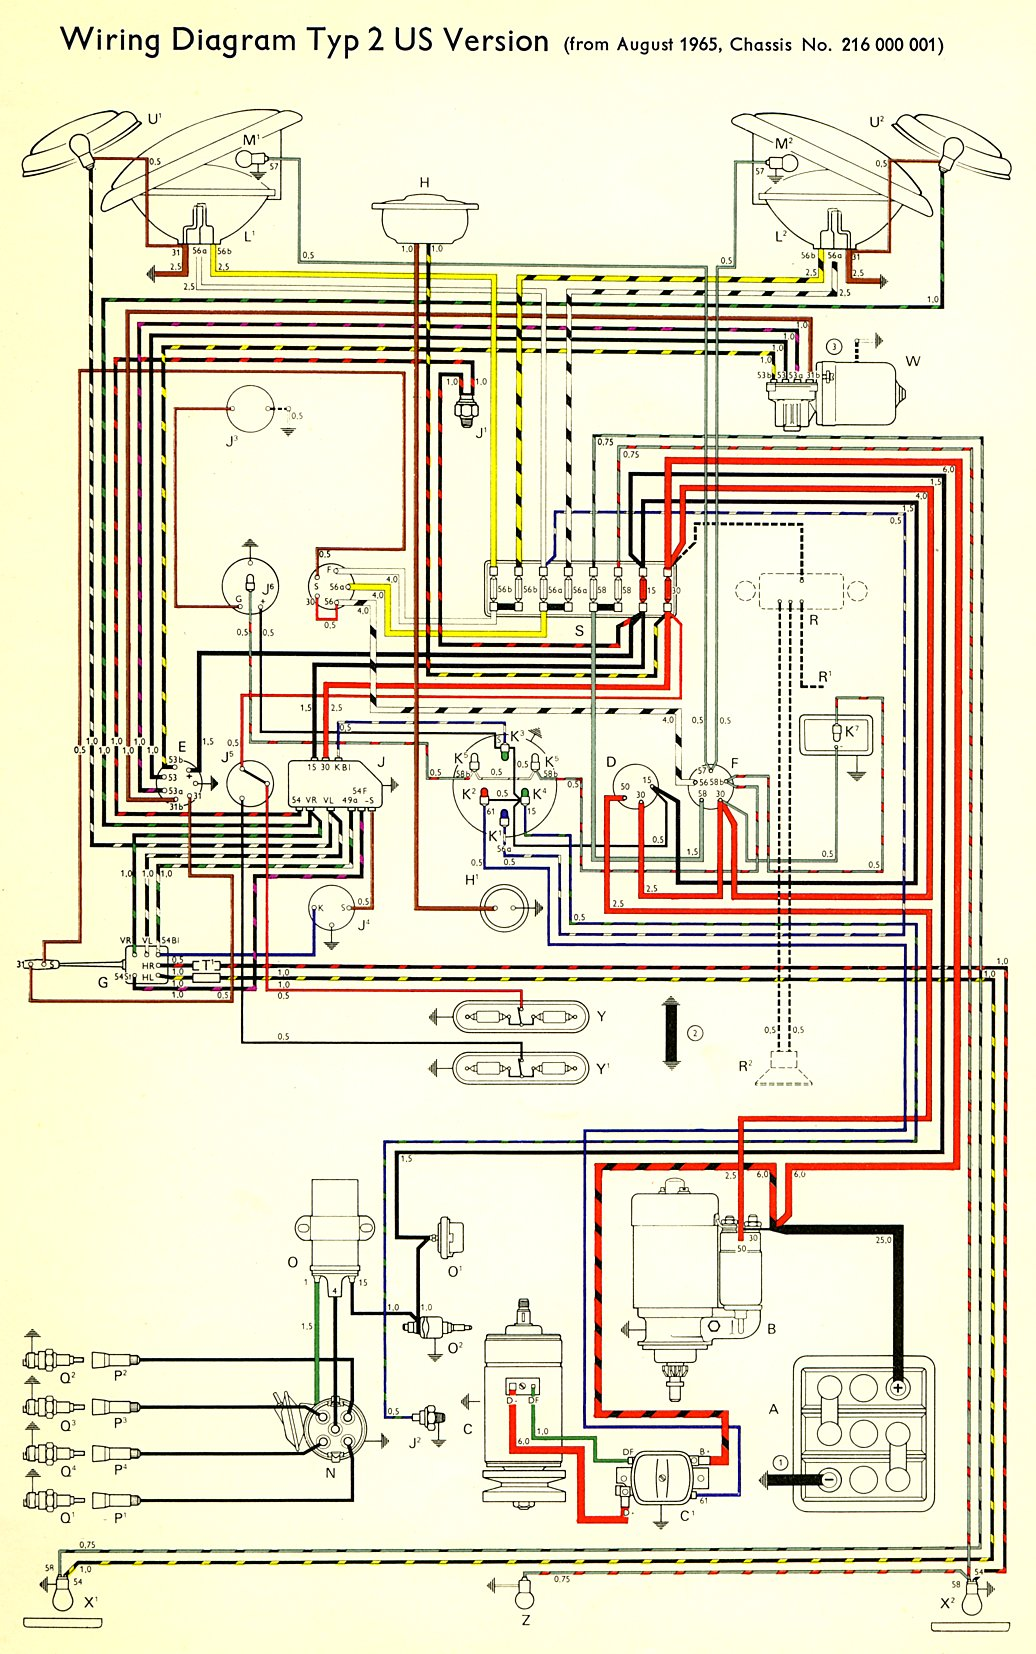 bus_66_USA 1966 bus wiring diagram (usa) thegoldenbug com Volkswagen Type 2 Wiring Harness at crackthecode.co